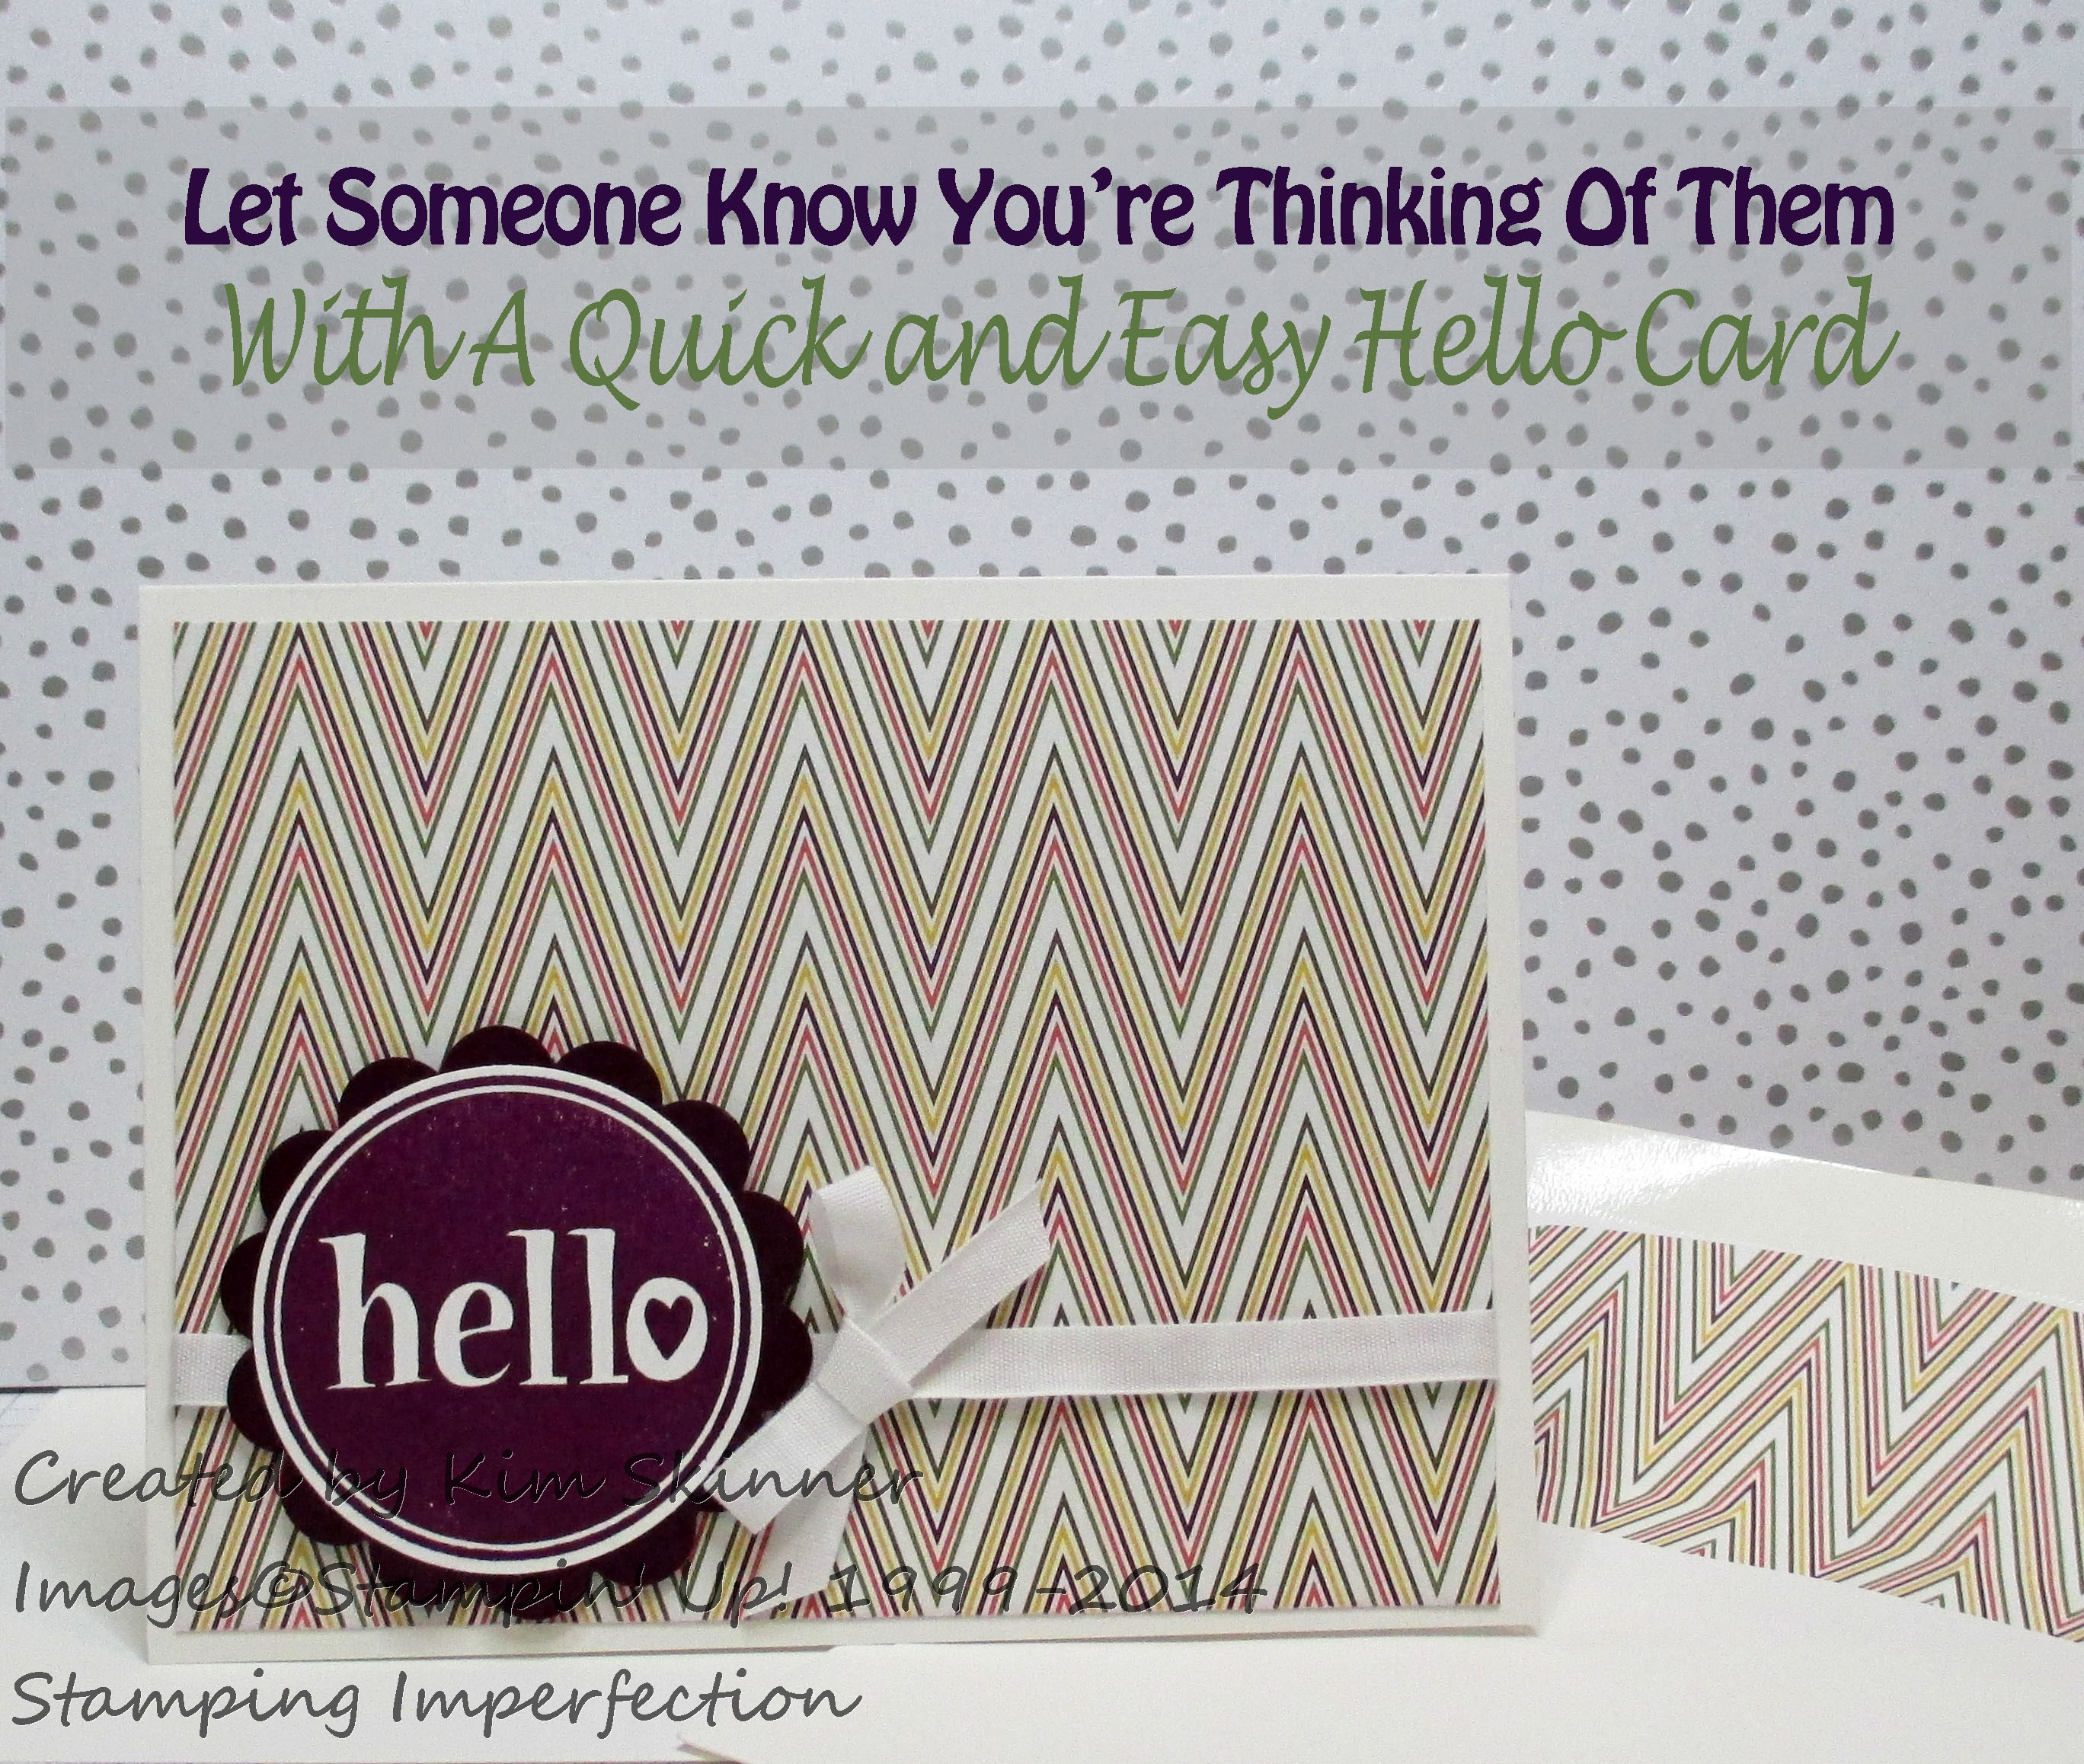 let someone know you're thinking about them with Stamping Imperfection